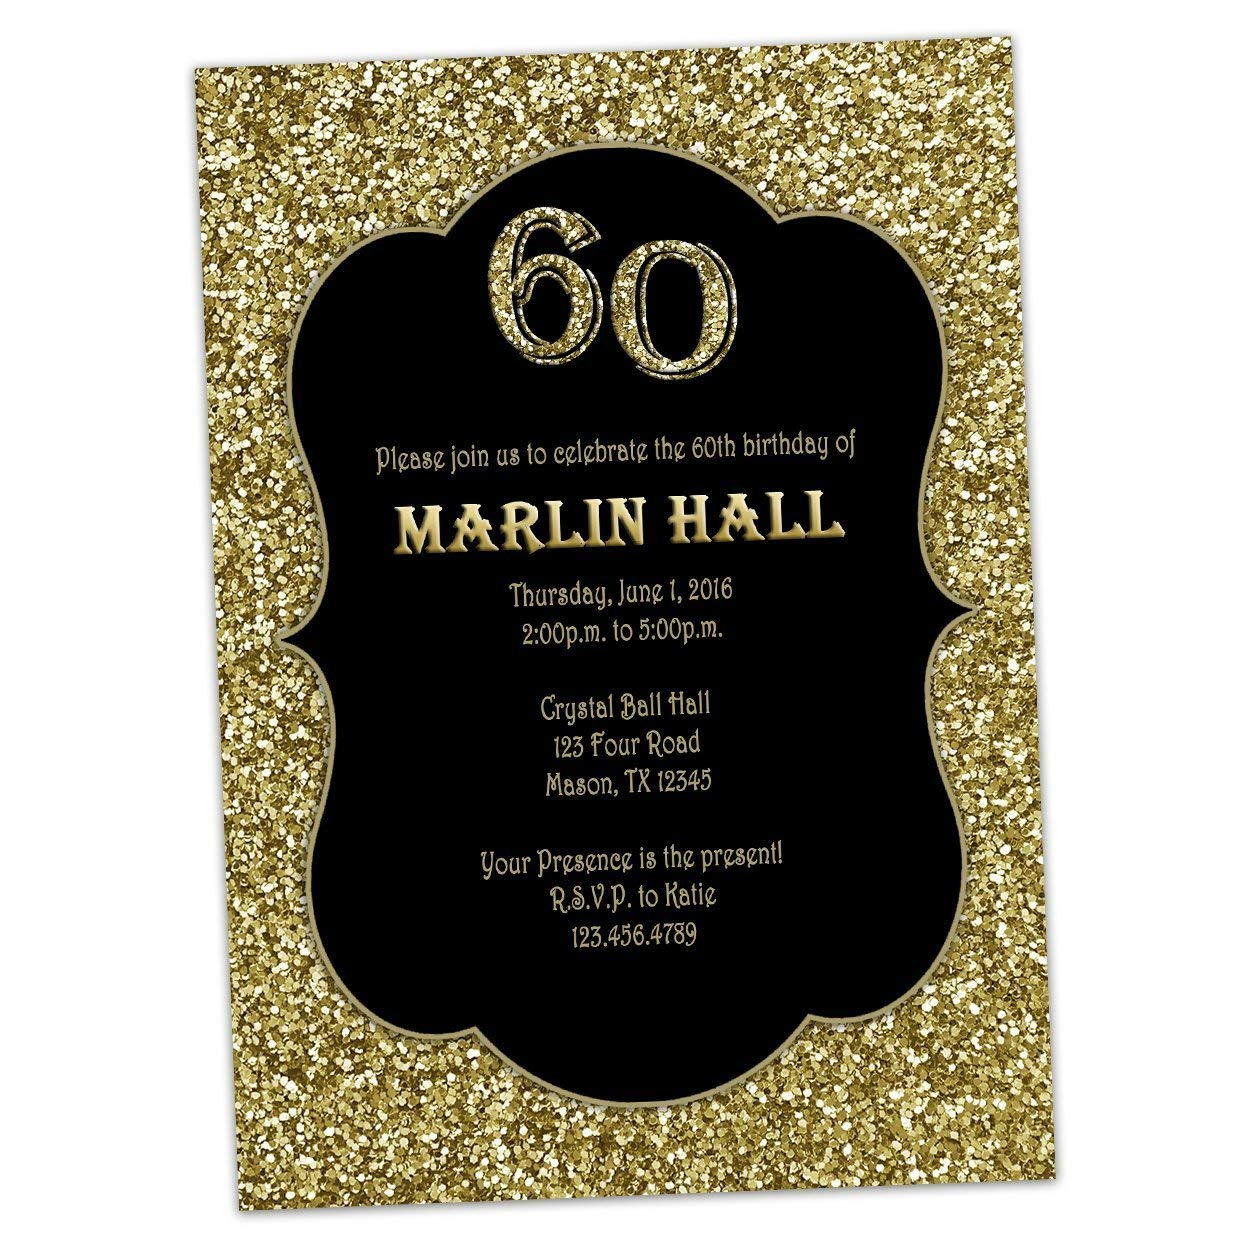 Milestone Black Gold Glitter Birthday Invitations Men Women 30th 40th 50th 60th 70th 80th